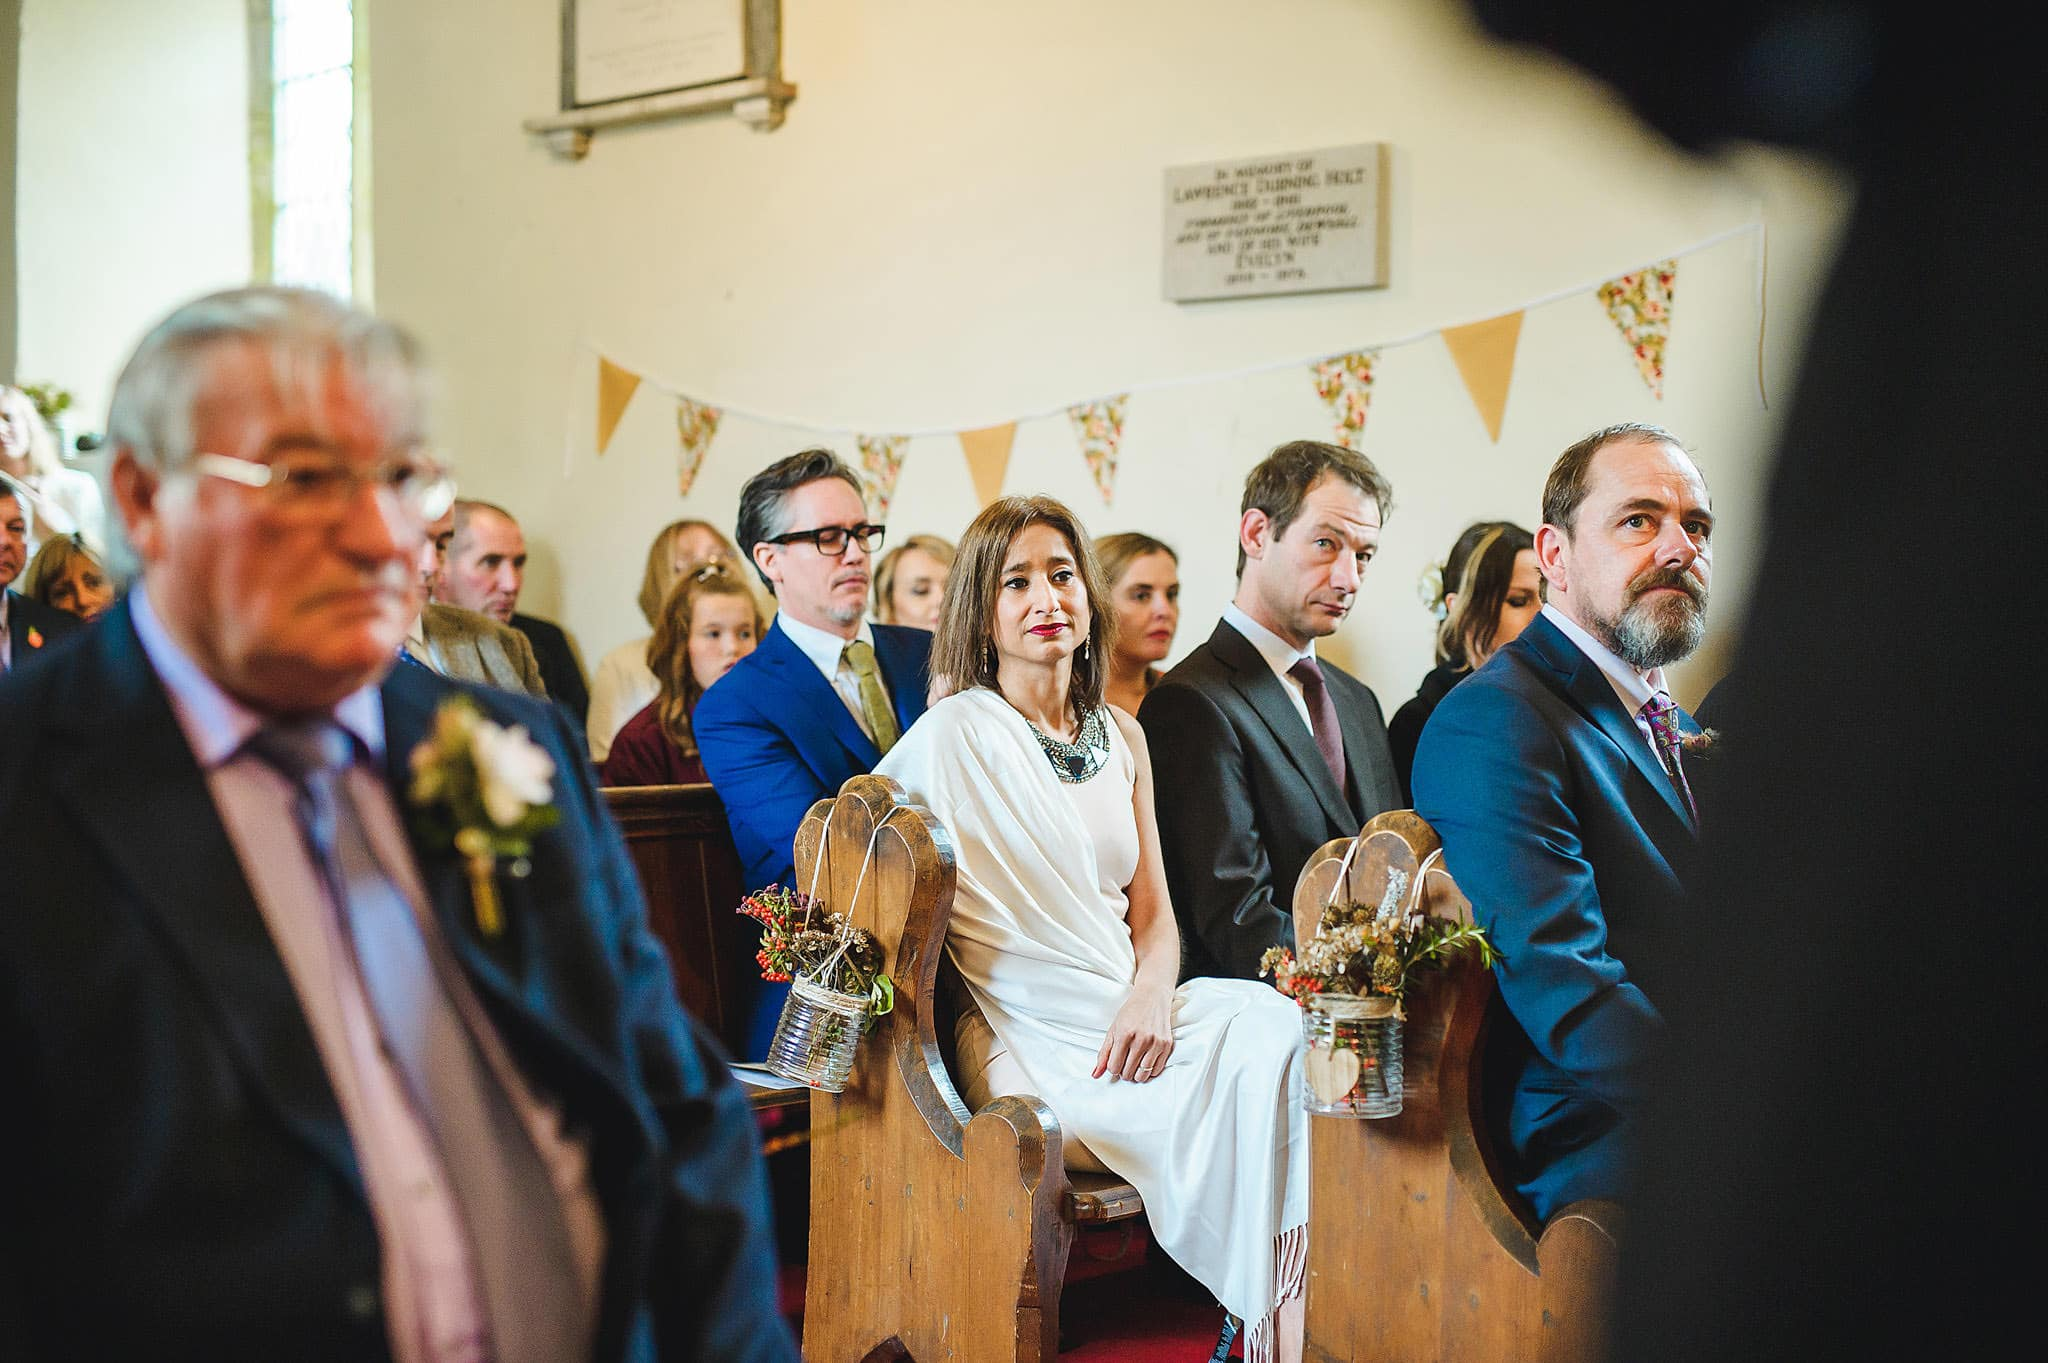 Dewsall Court wedding photography Herefordshire | Laura + Alex 52